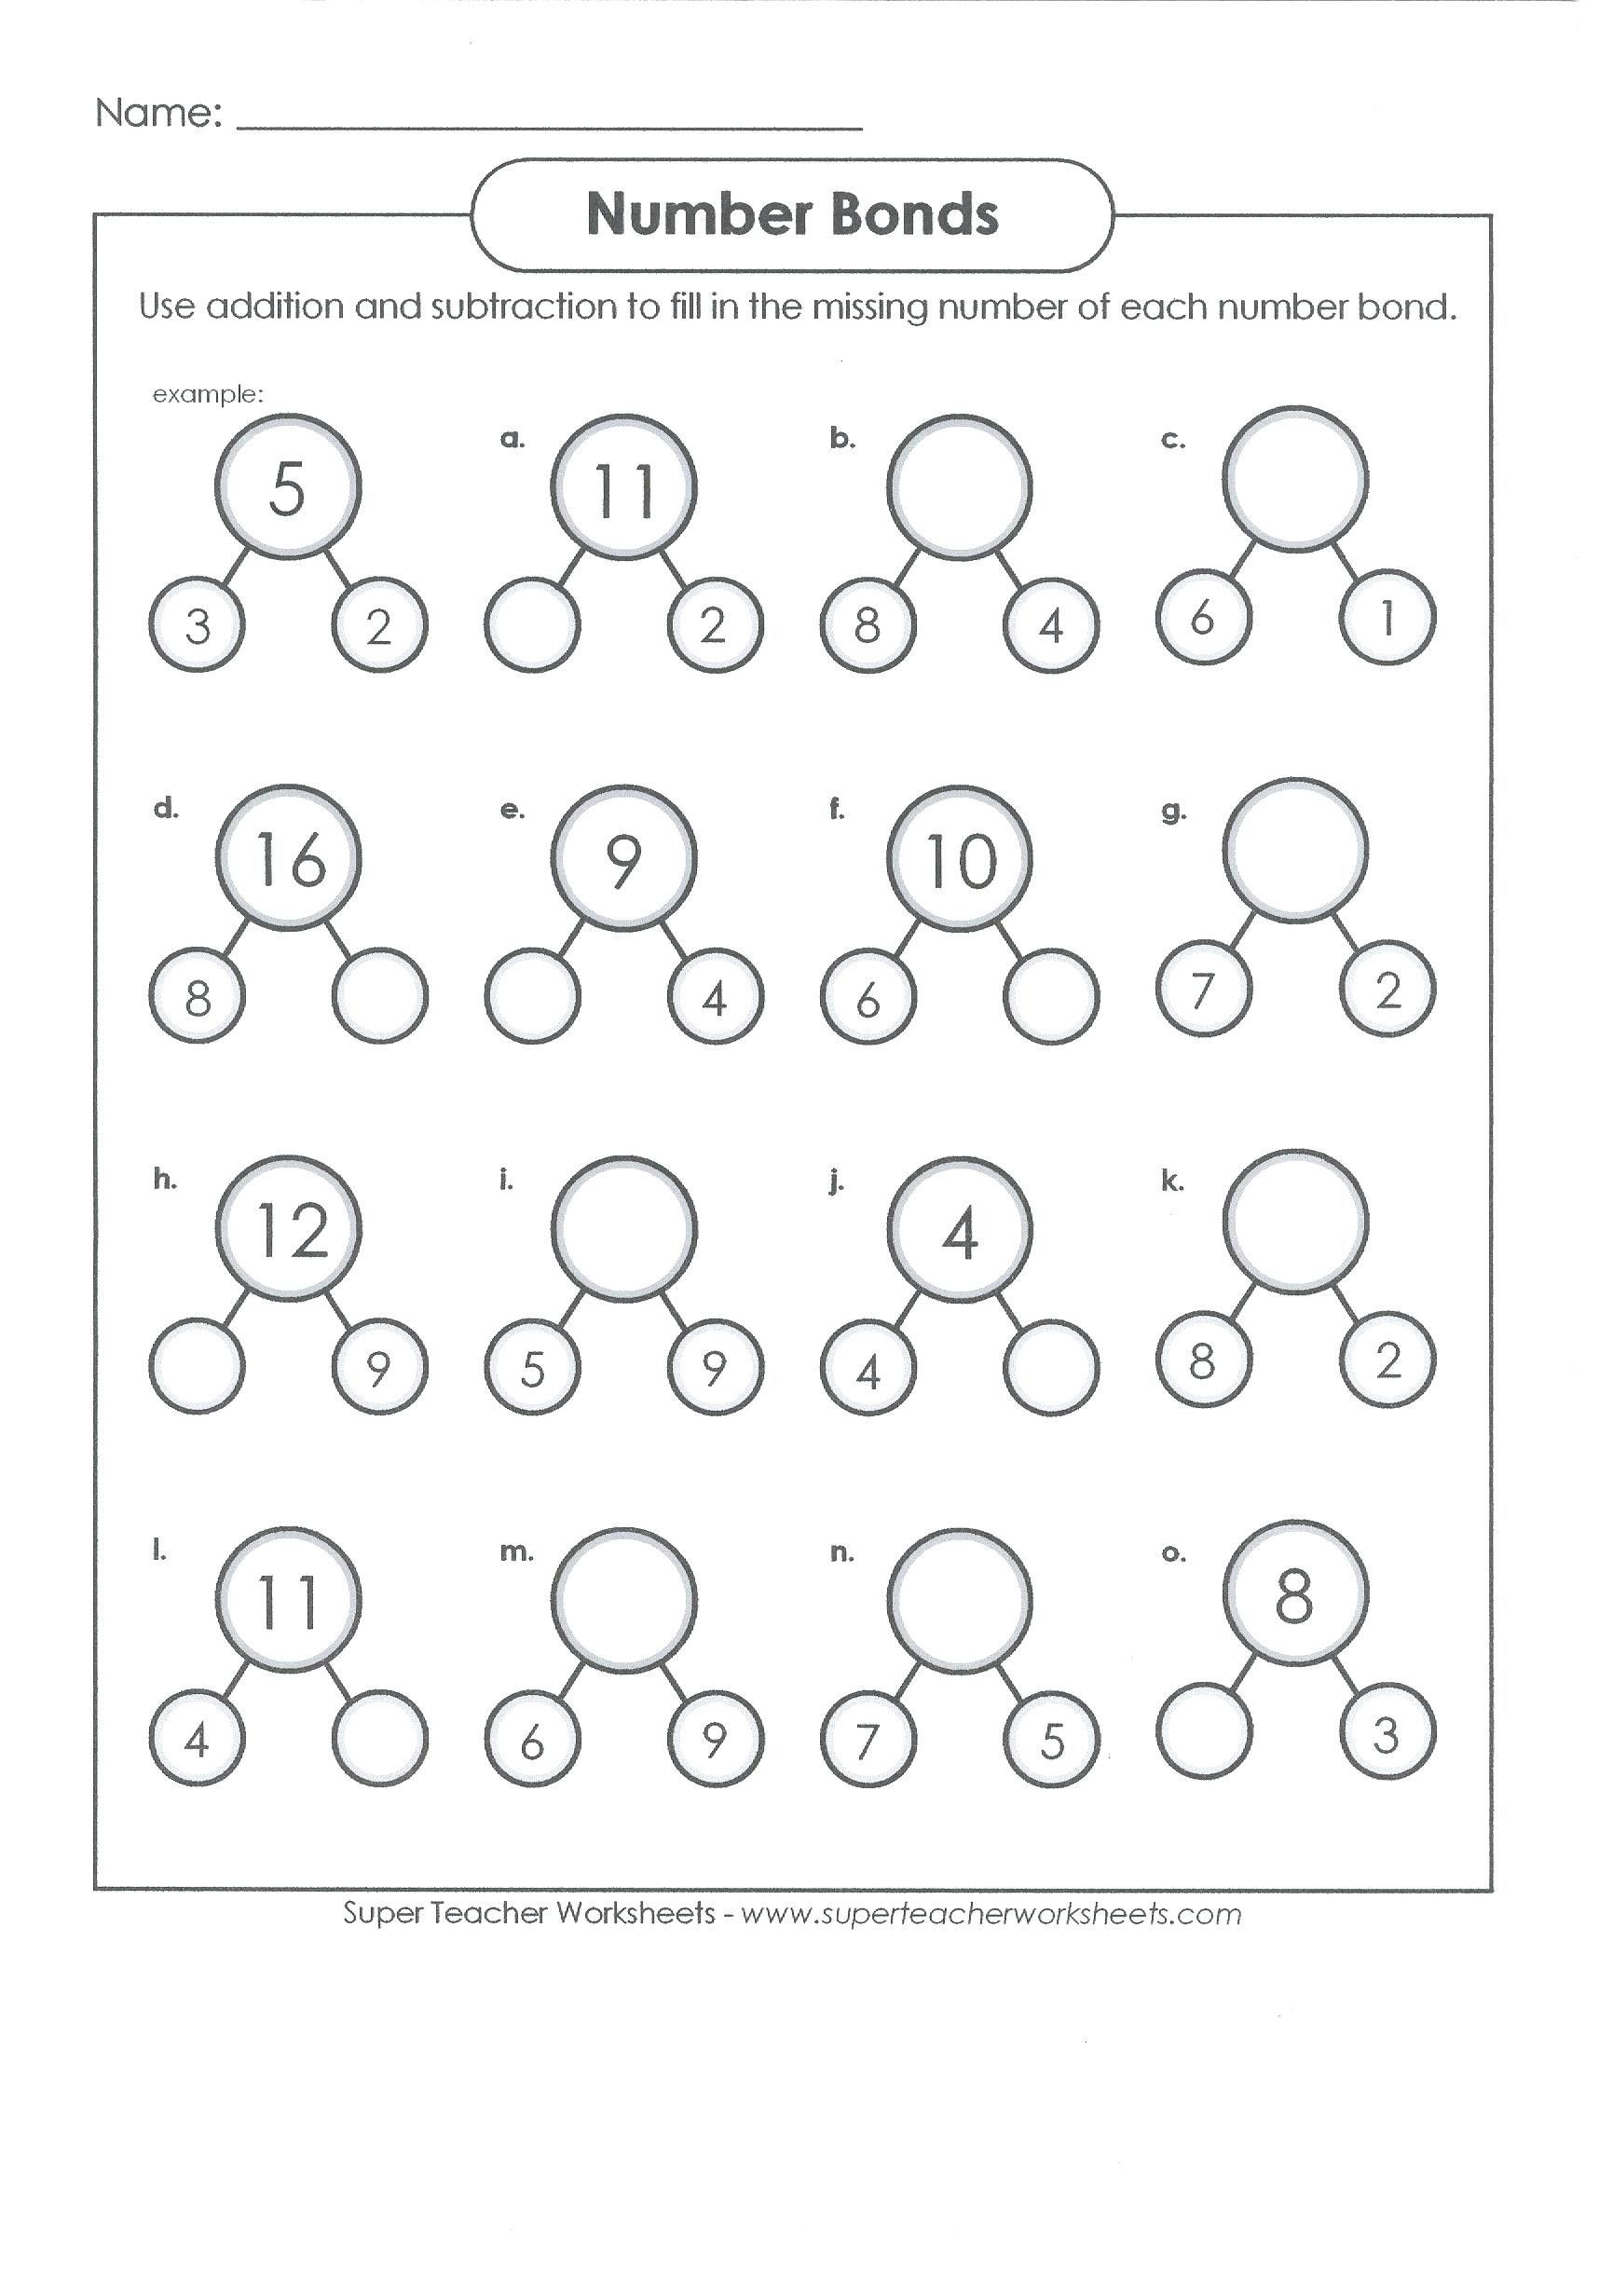 Polygons Worksheets 5th Grade Pin On Educational Worksheets Template